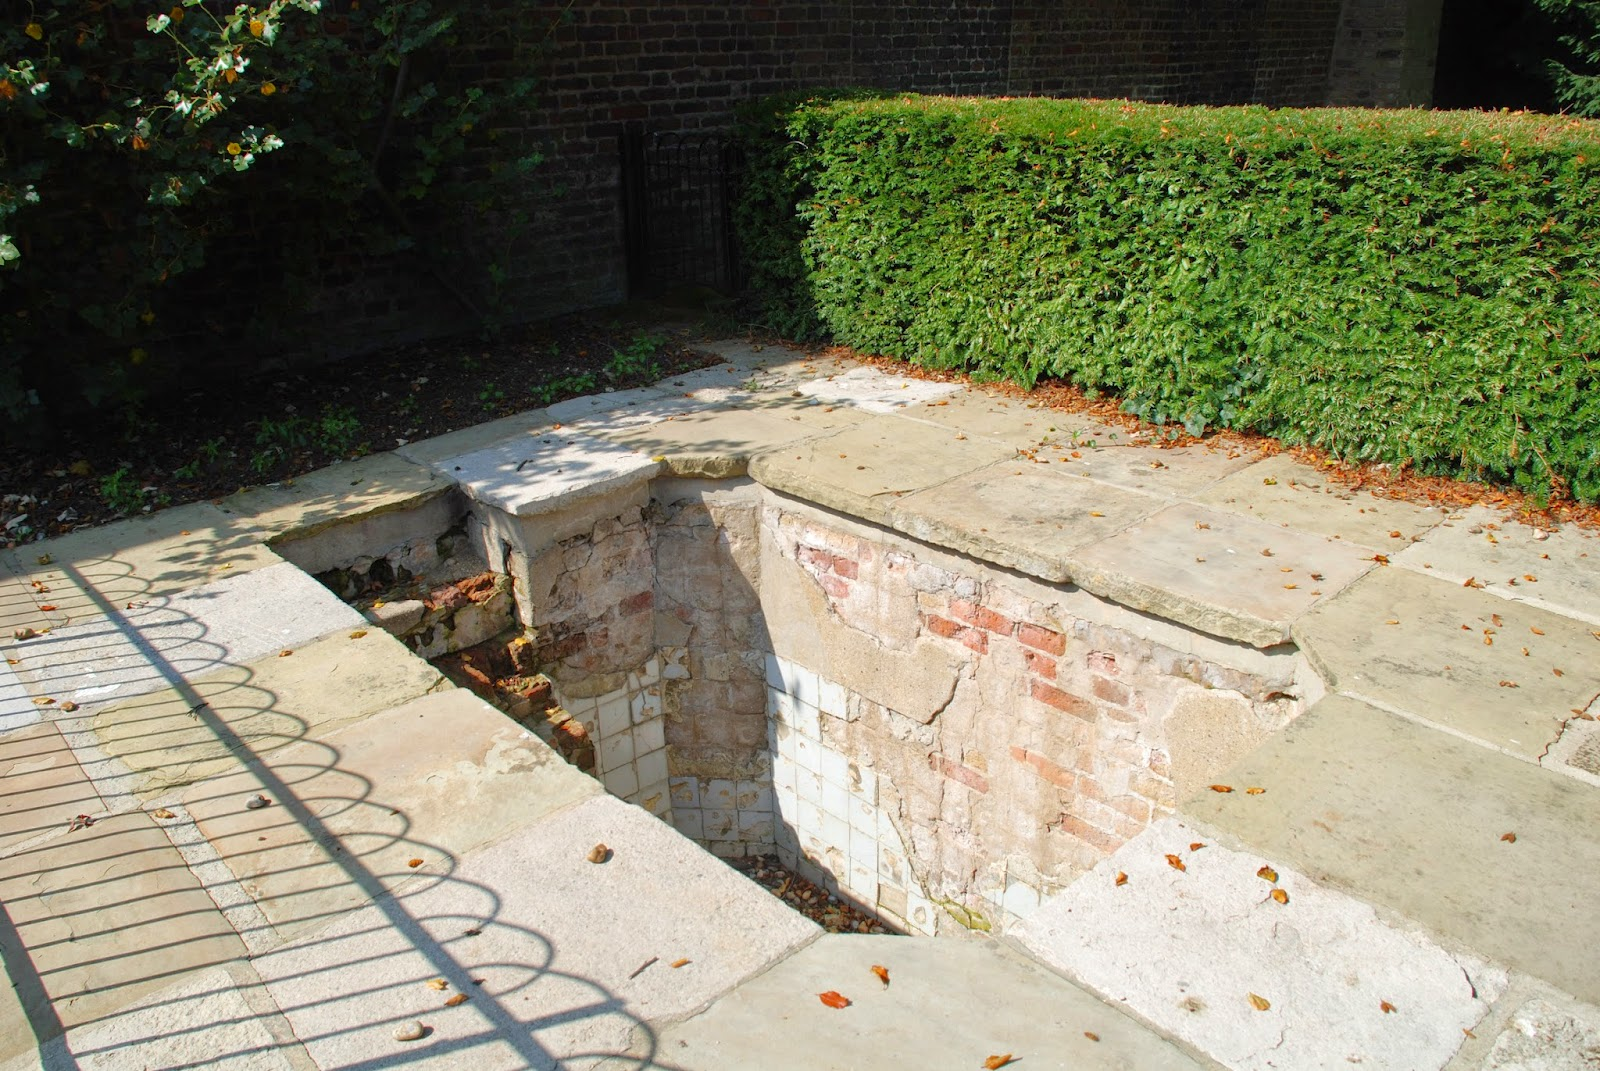 Princess Caroline's bath, Greenwich Park